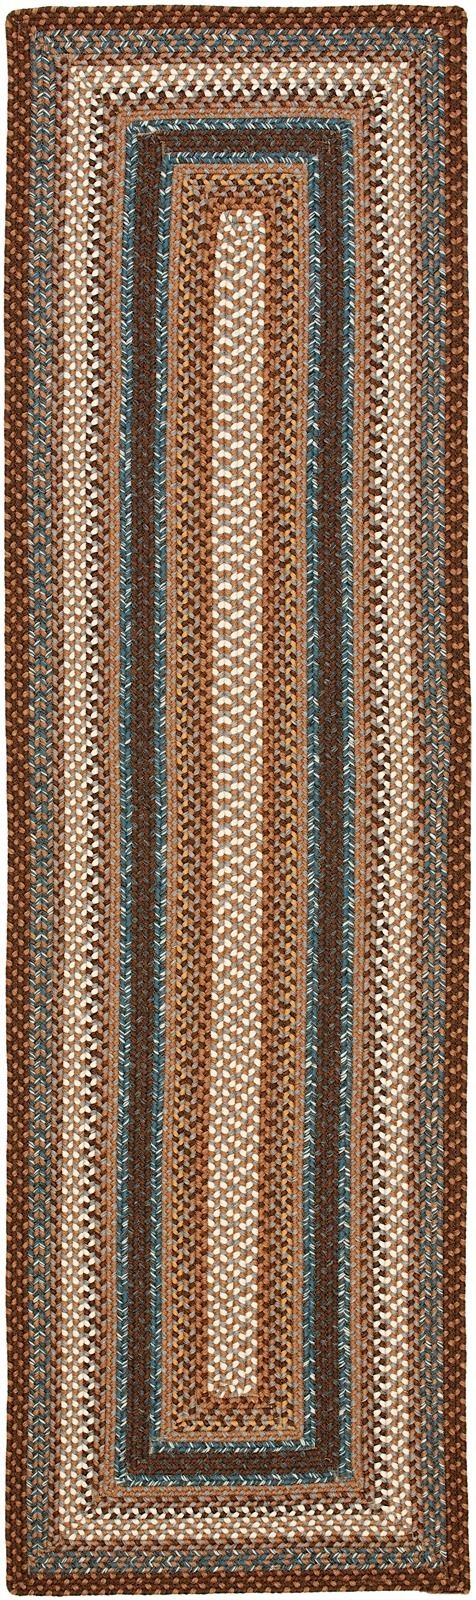 safavieh braided braided area rug collection